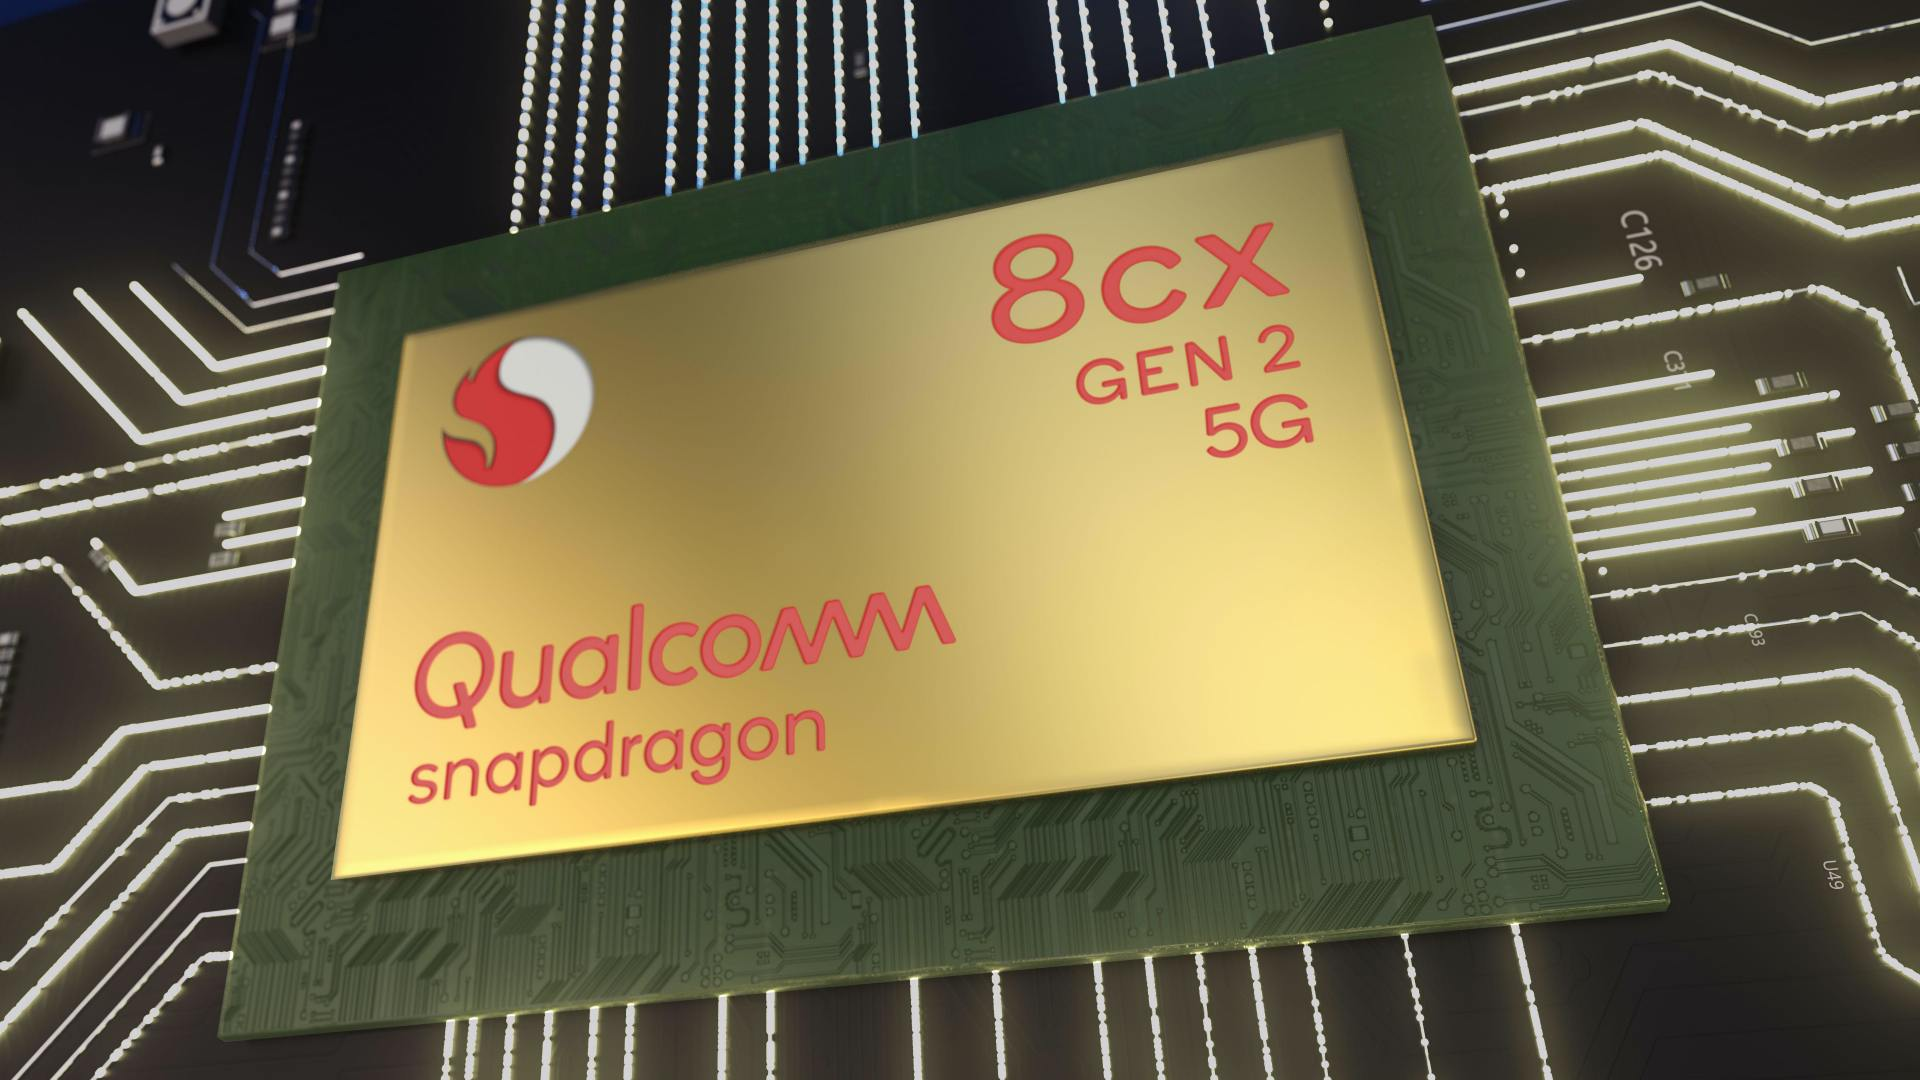 Qualcomm Announces Snapdragon 8cx Gen 2 5G; Made for 2-in-1 Notebooks 4